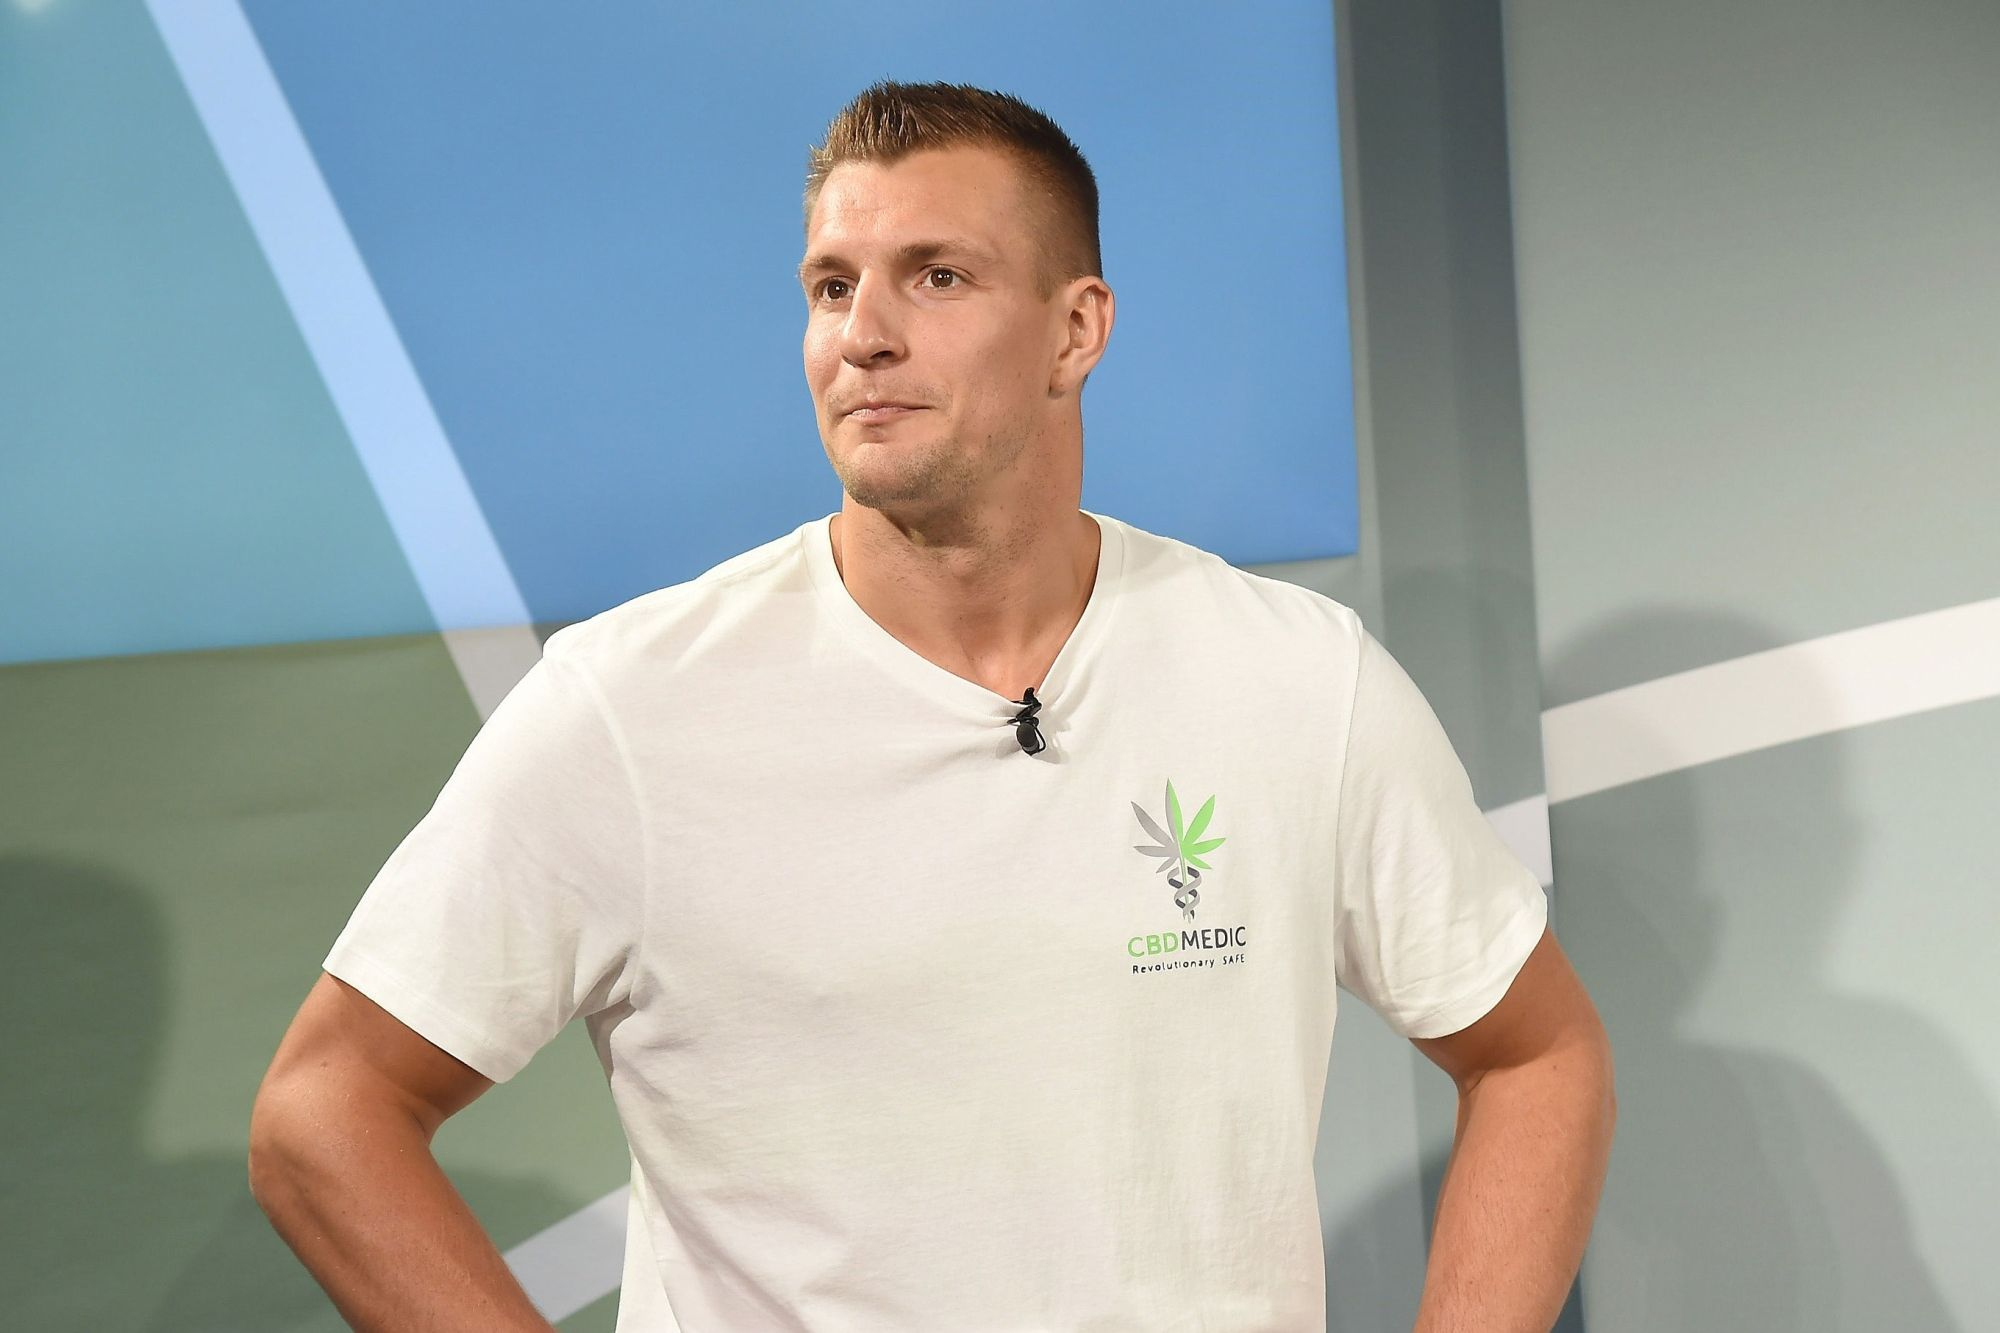 Gronk Gets Into The CBD Business